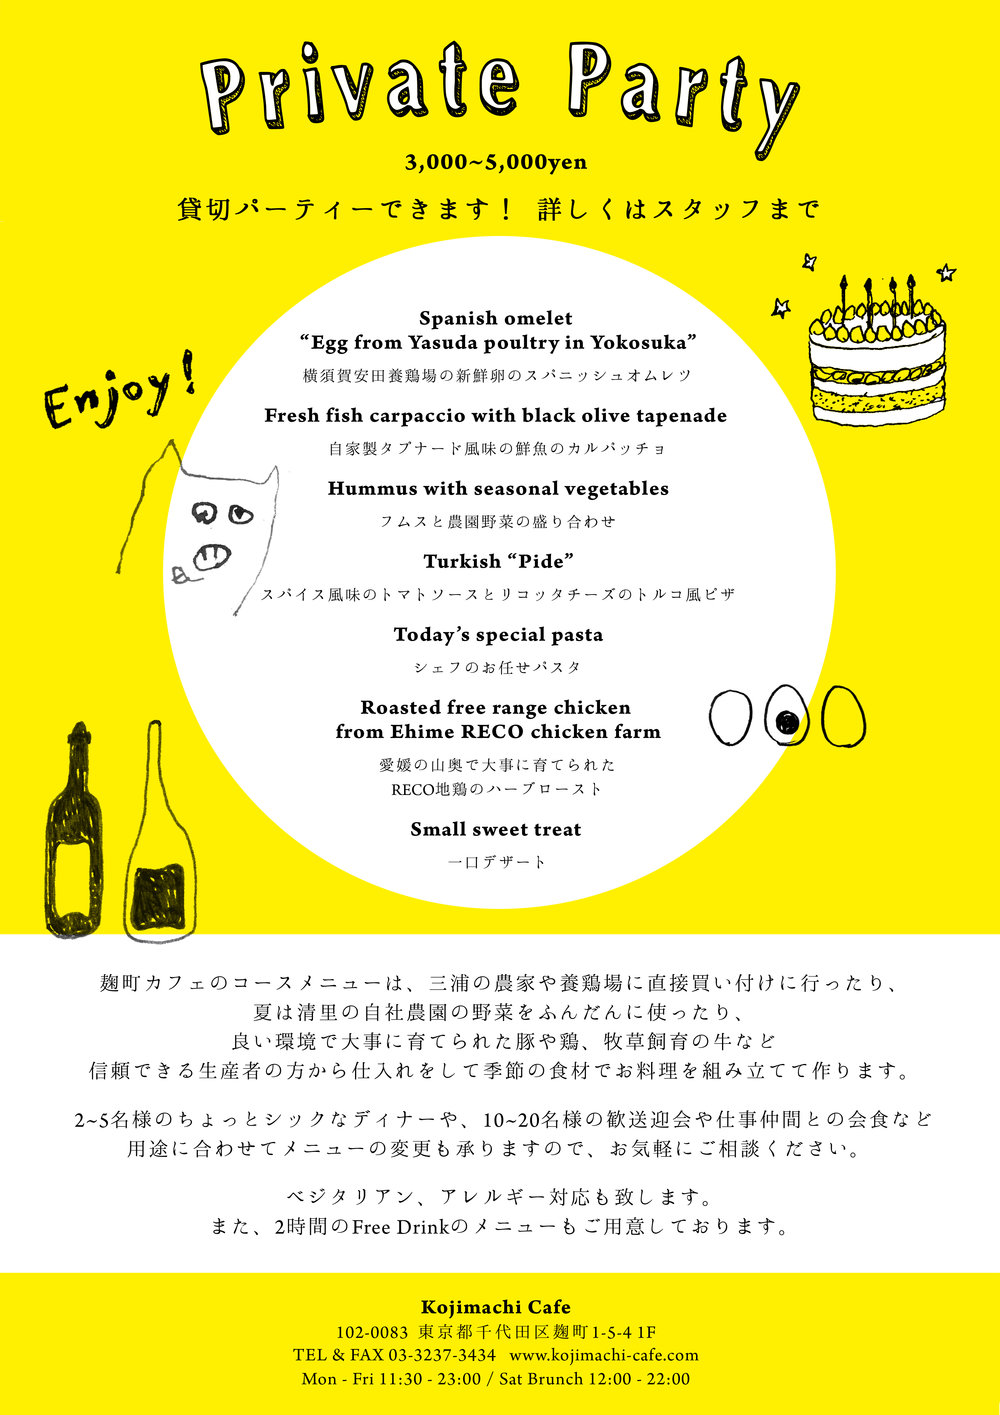 Kojimachi Cafe Course Menu